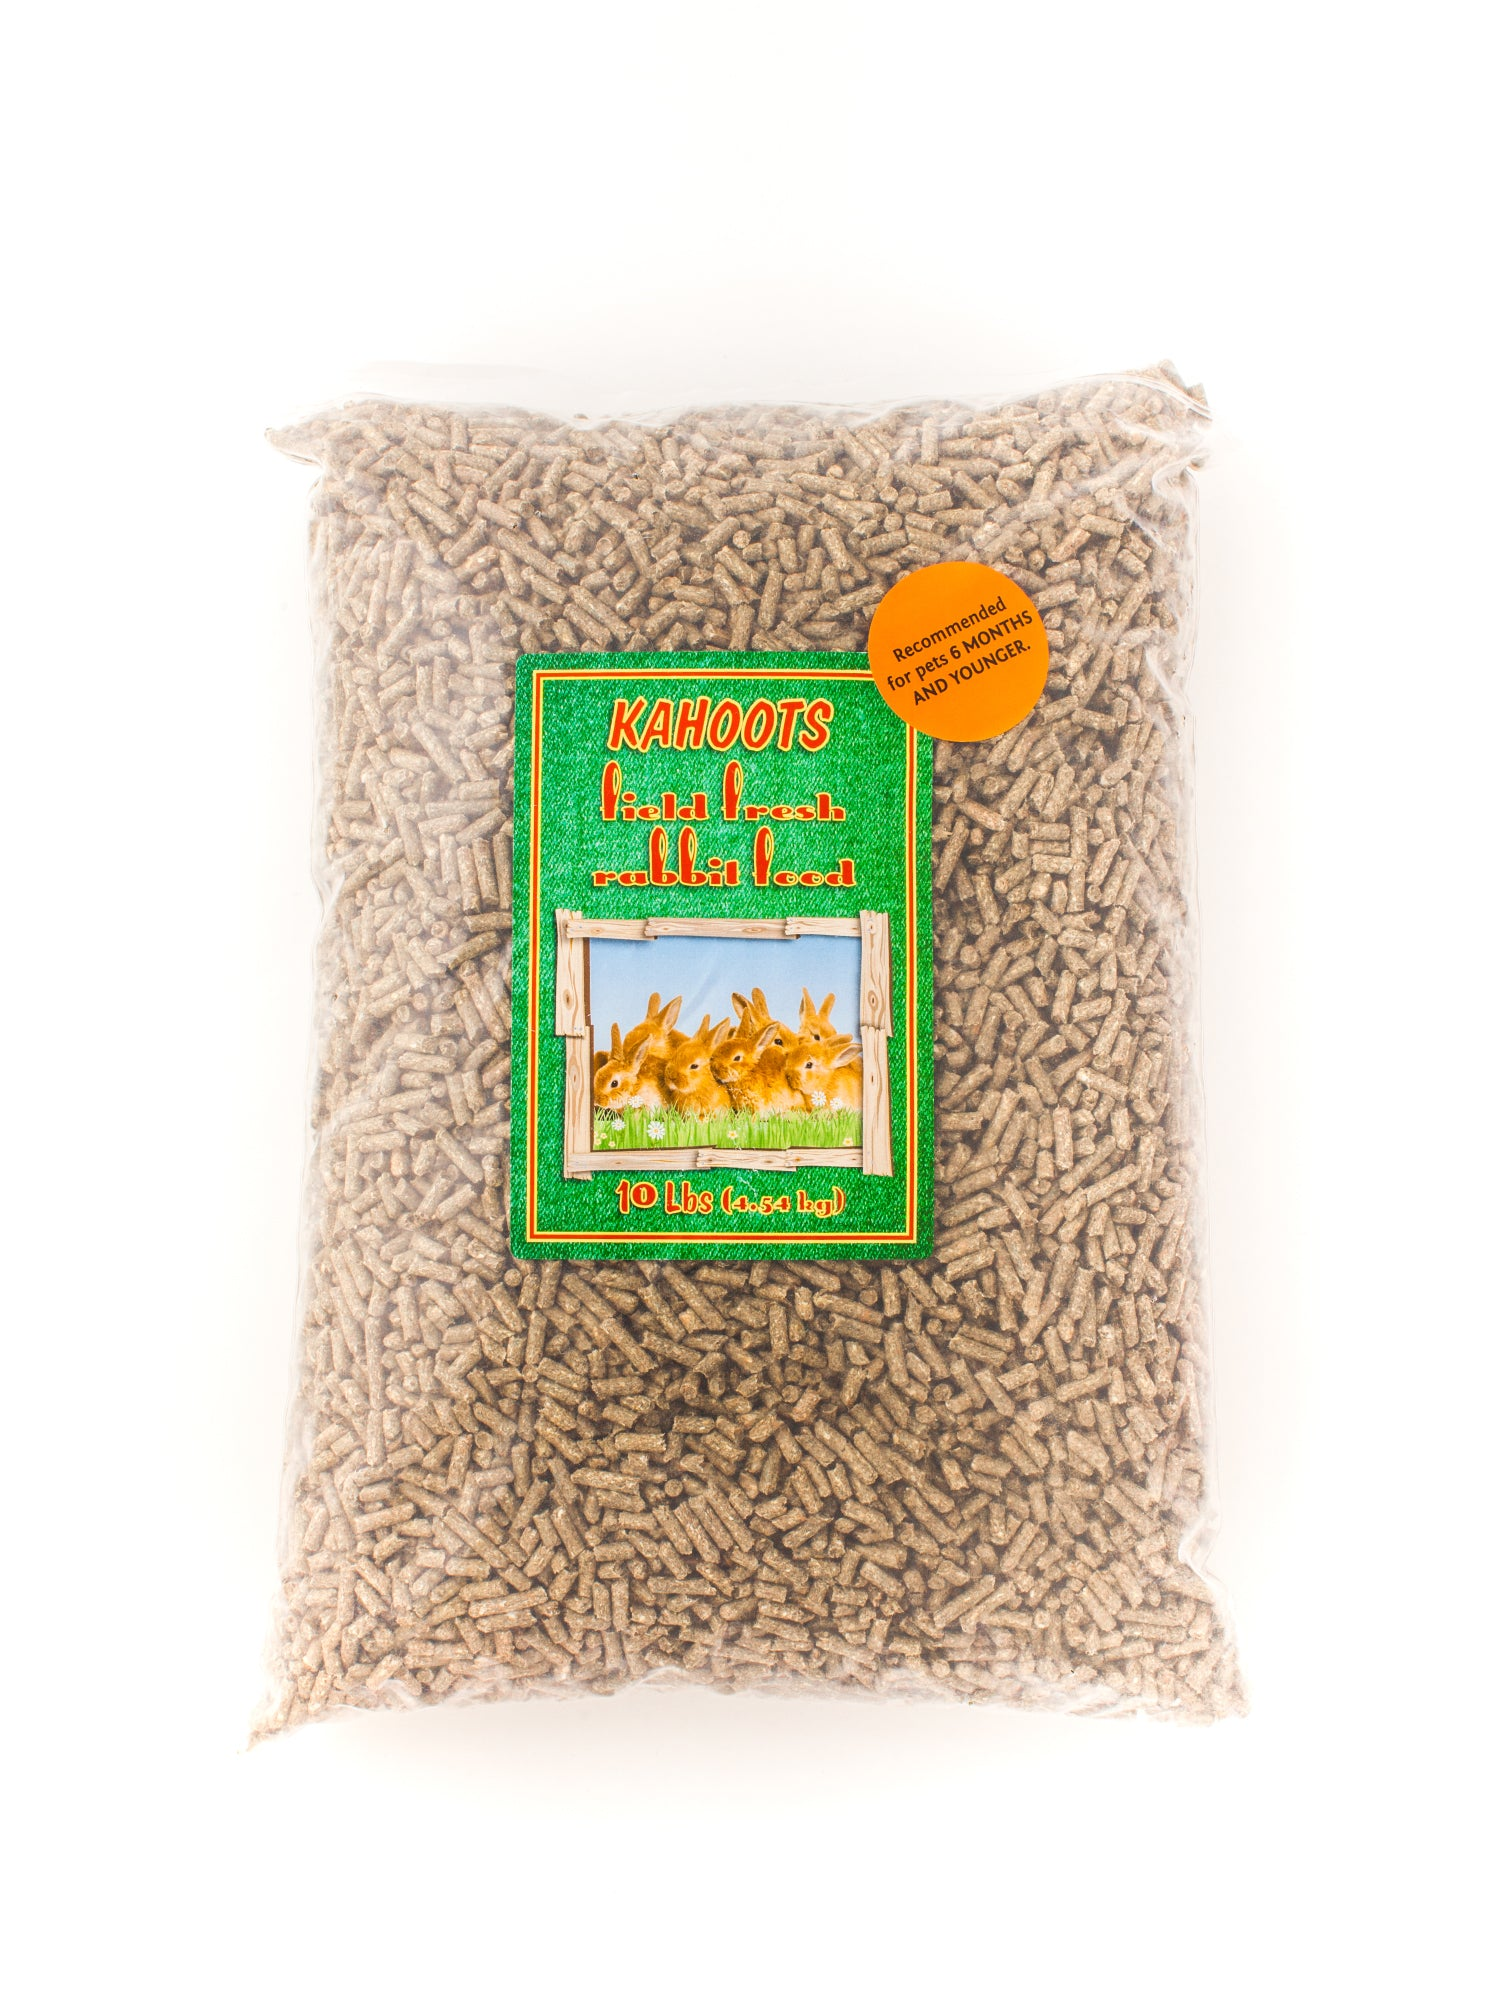 Rabbit food pellets in bag. 10lb